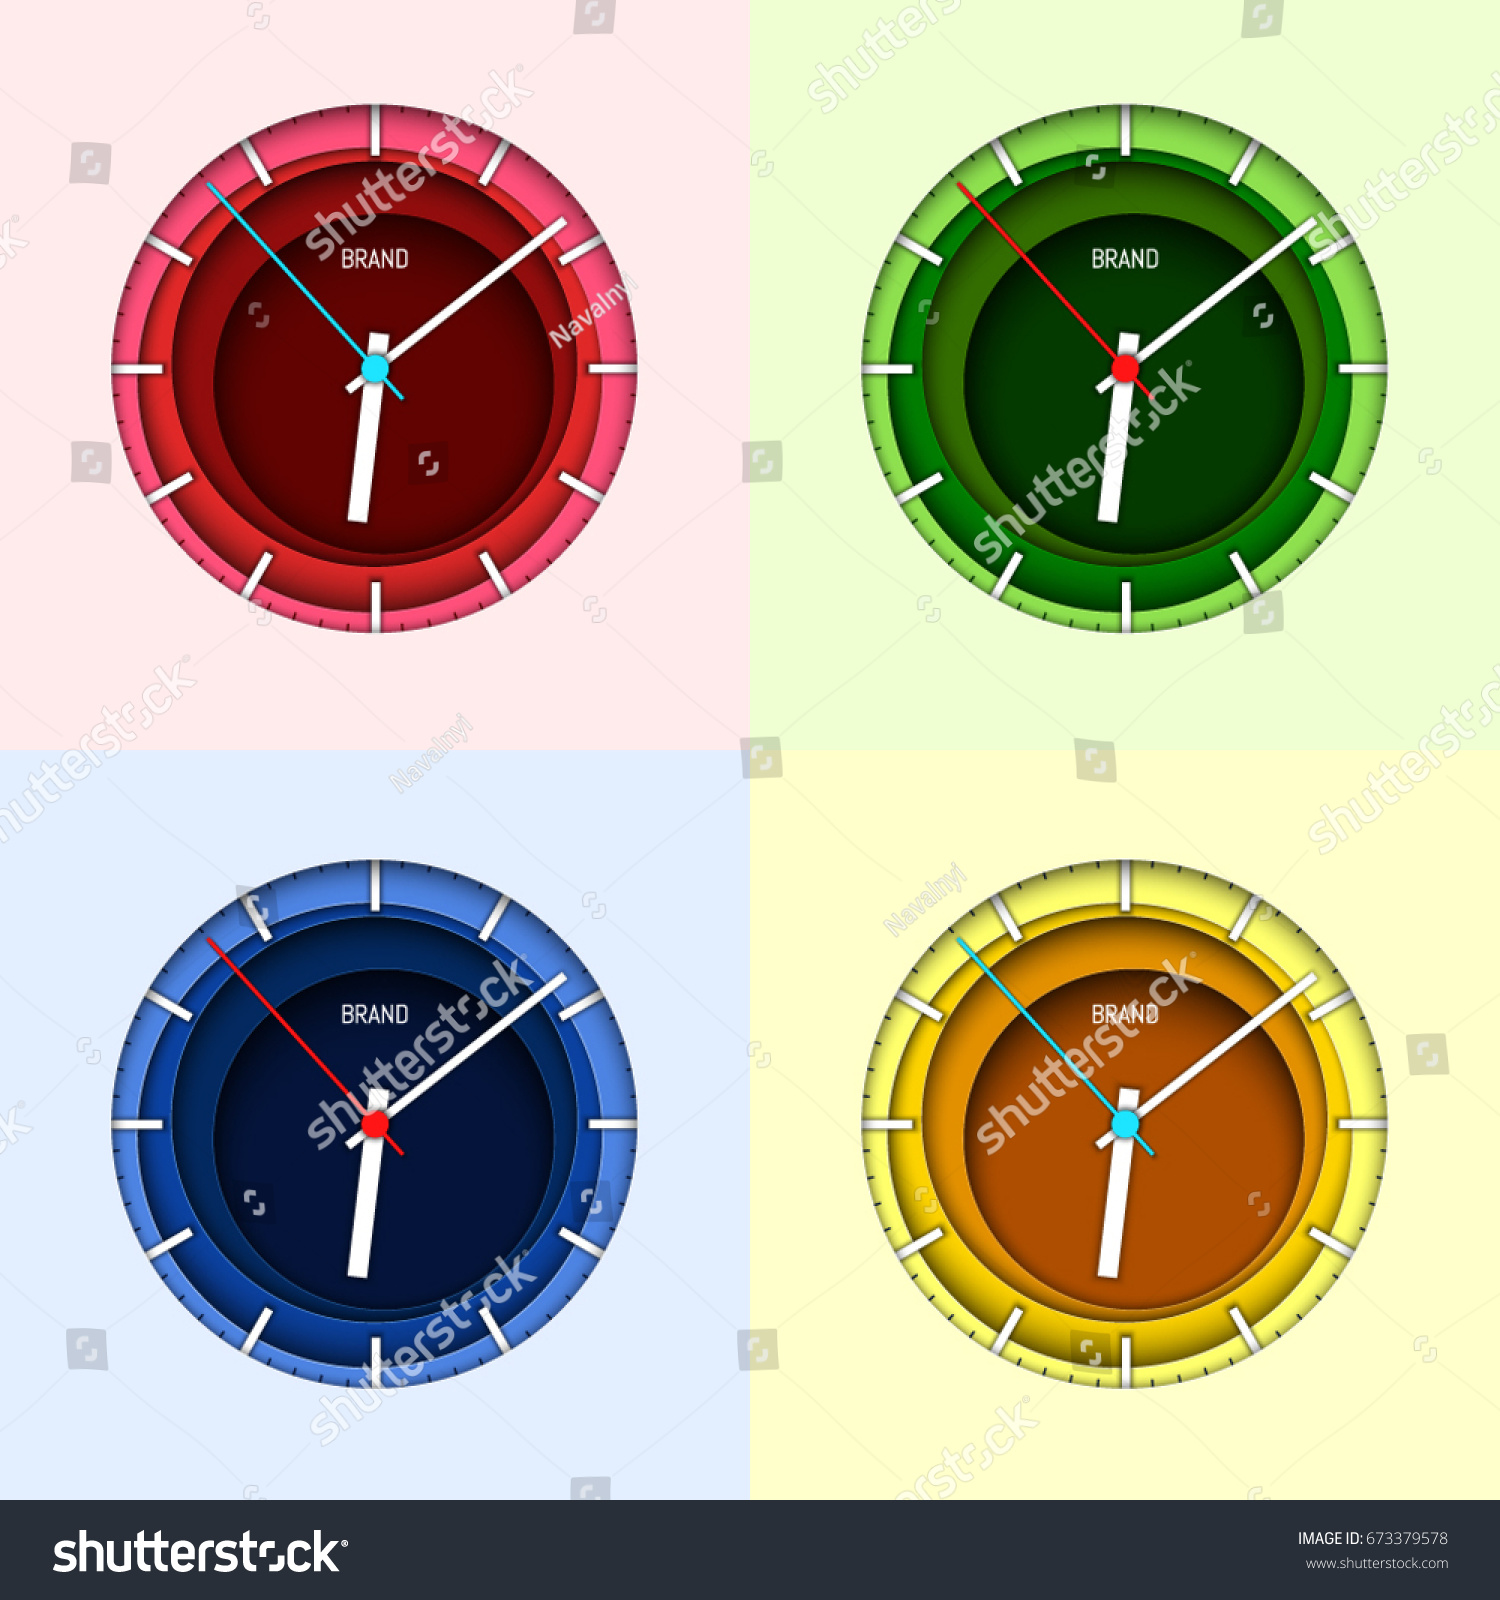 Clock face design set. Paper art style. Abstract background ...